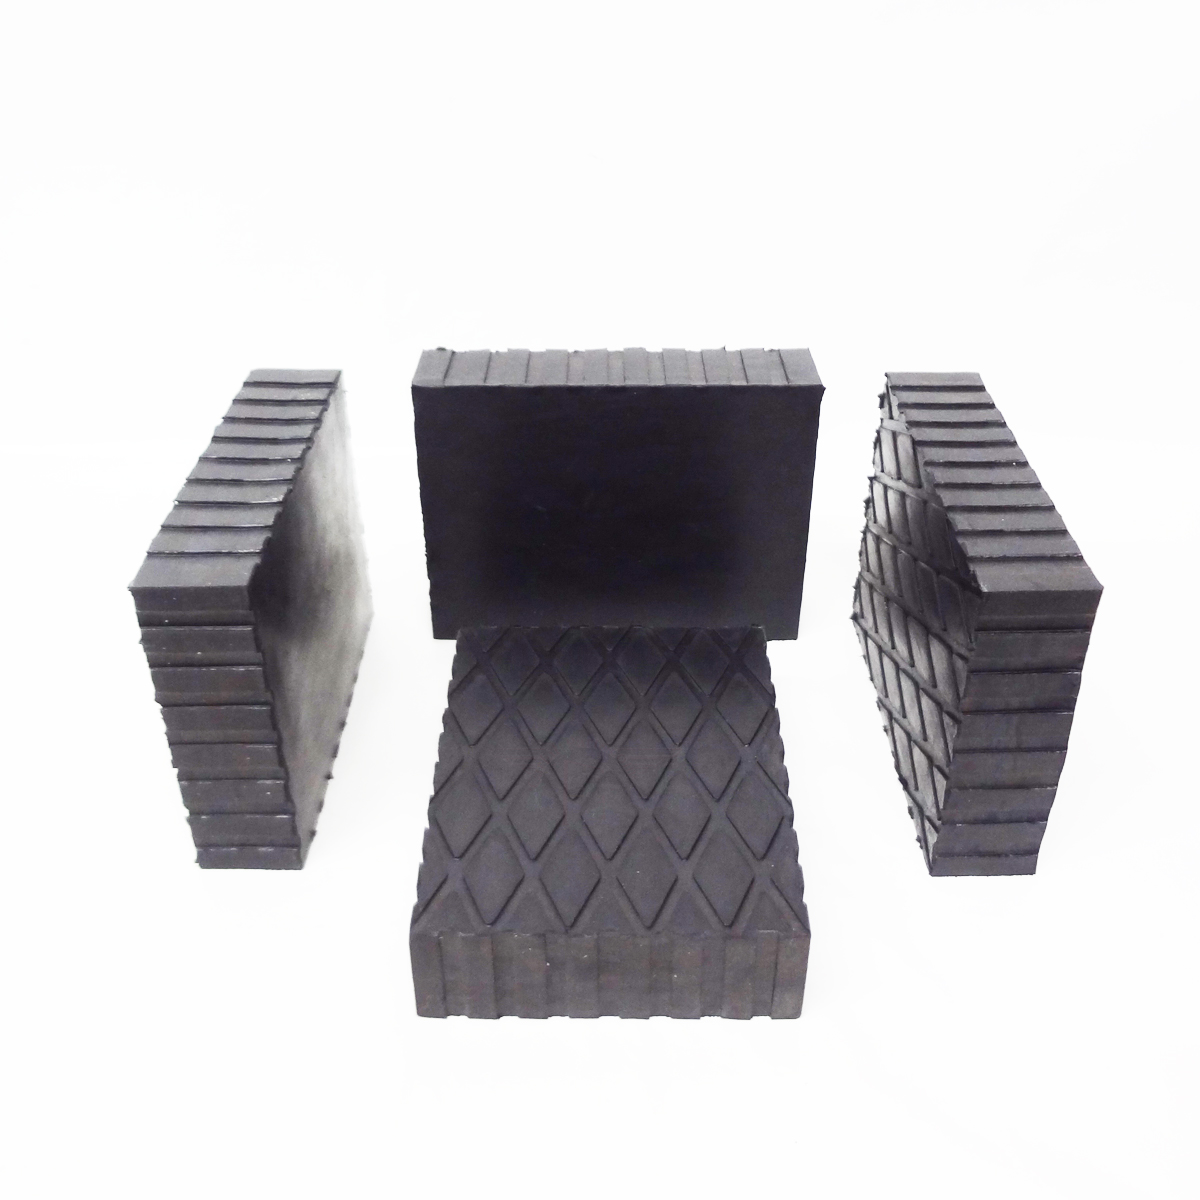 4 in 1 Auto Lift//Rolling Jack Rubber Block Pad Adapter Set for Car Auto Truck Hoist Square